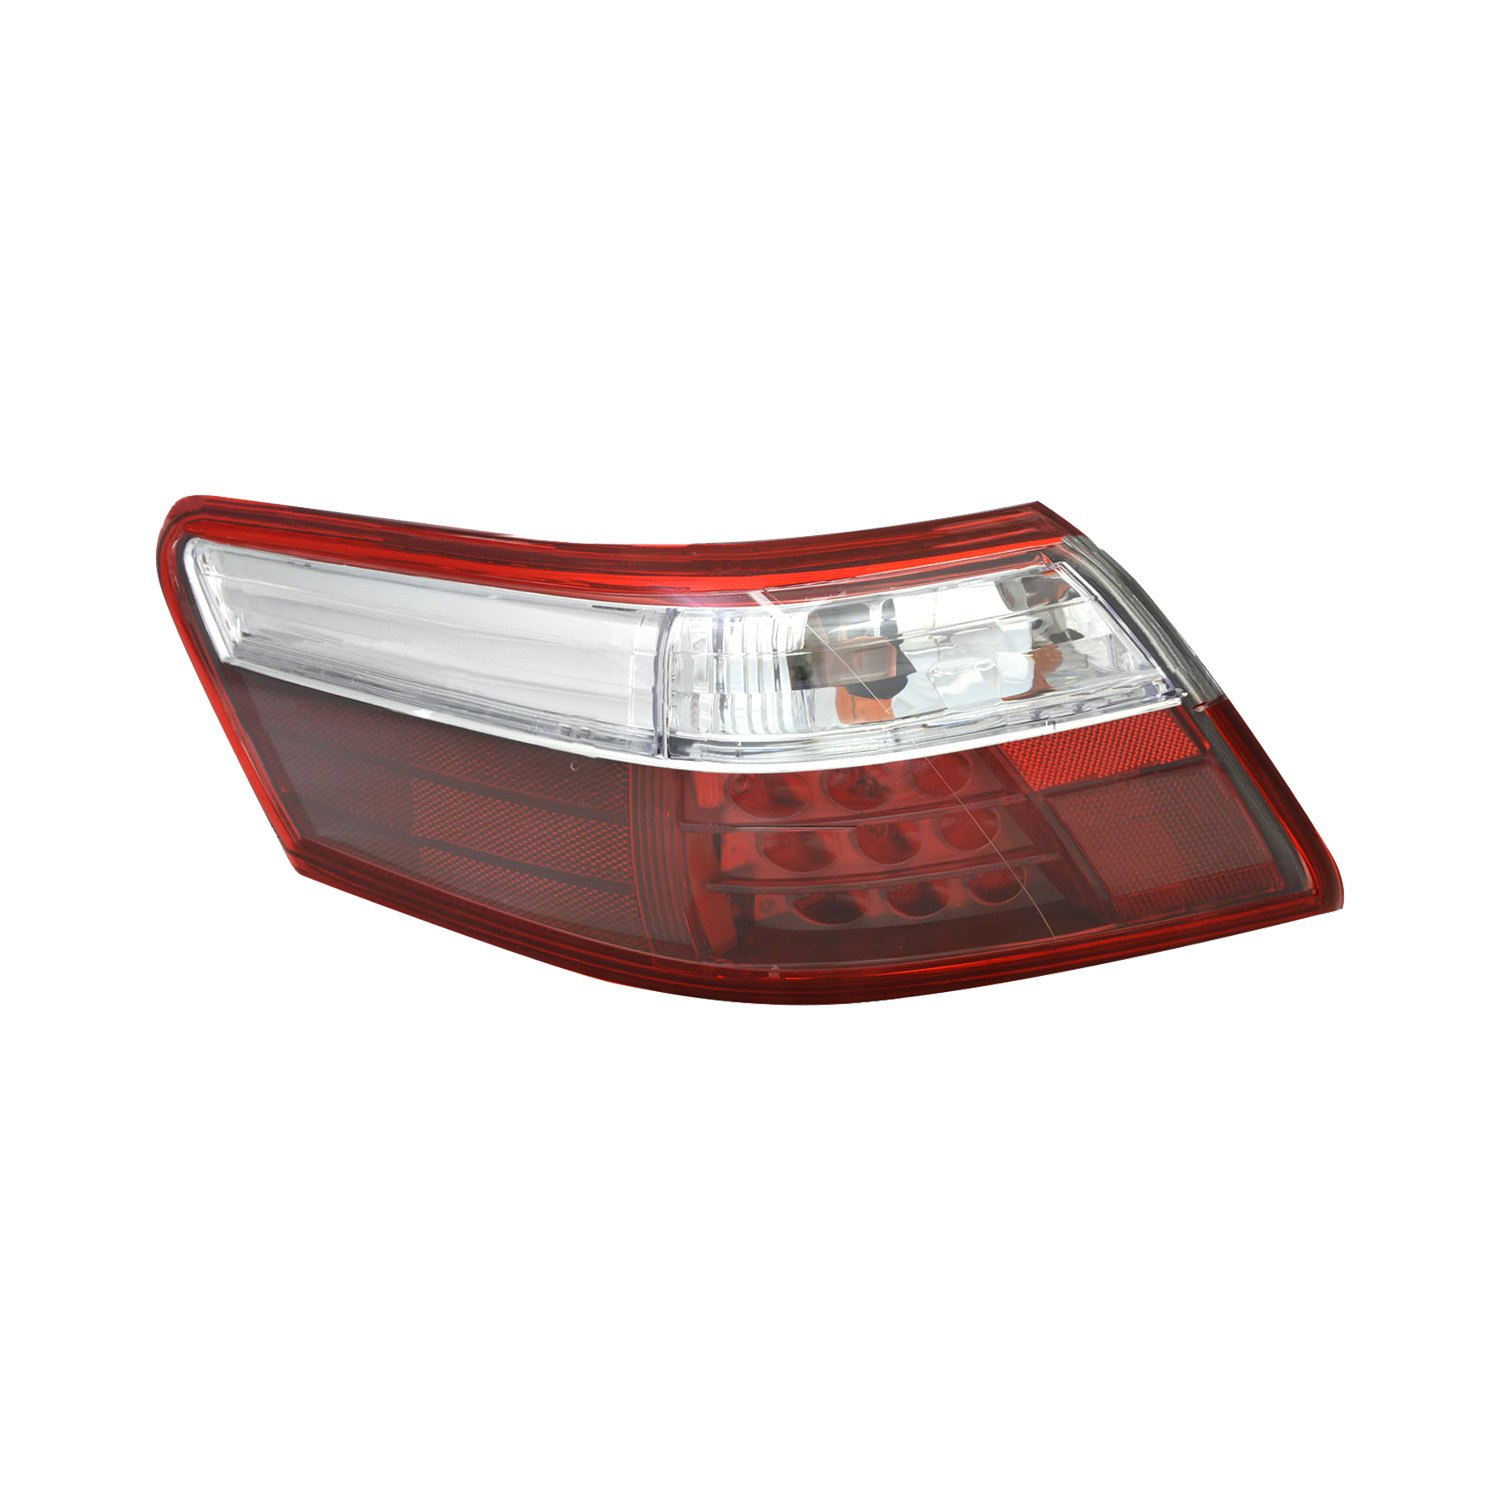 tyc toyota camry 2007 2008 replacement tail light. Black Bedroom Furniture Sets. Home Design Ideas